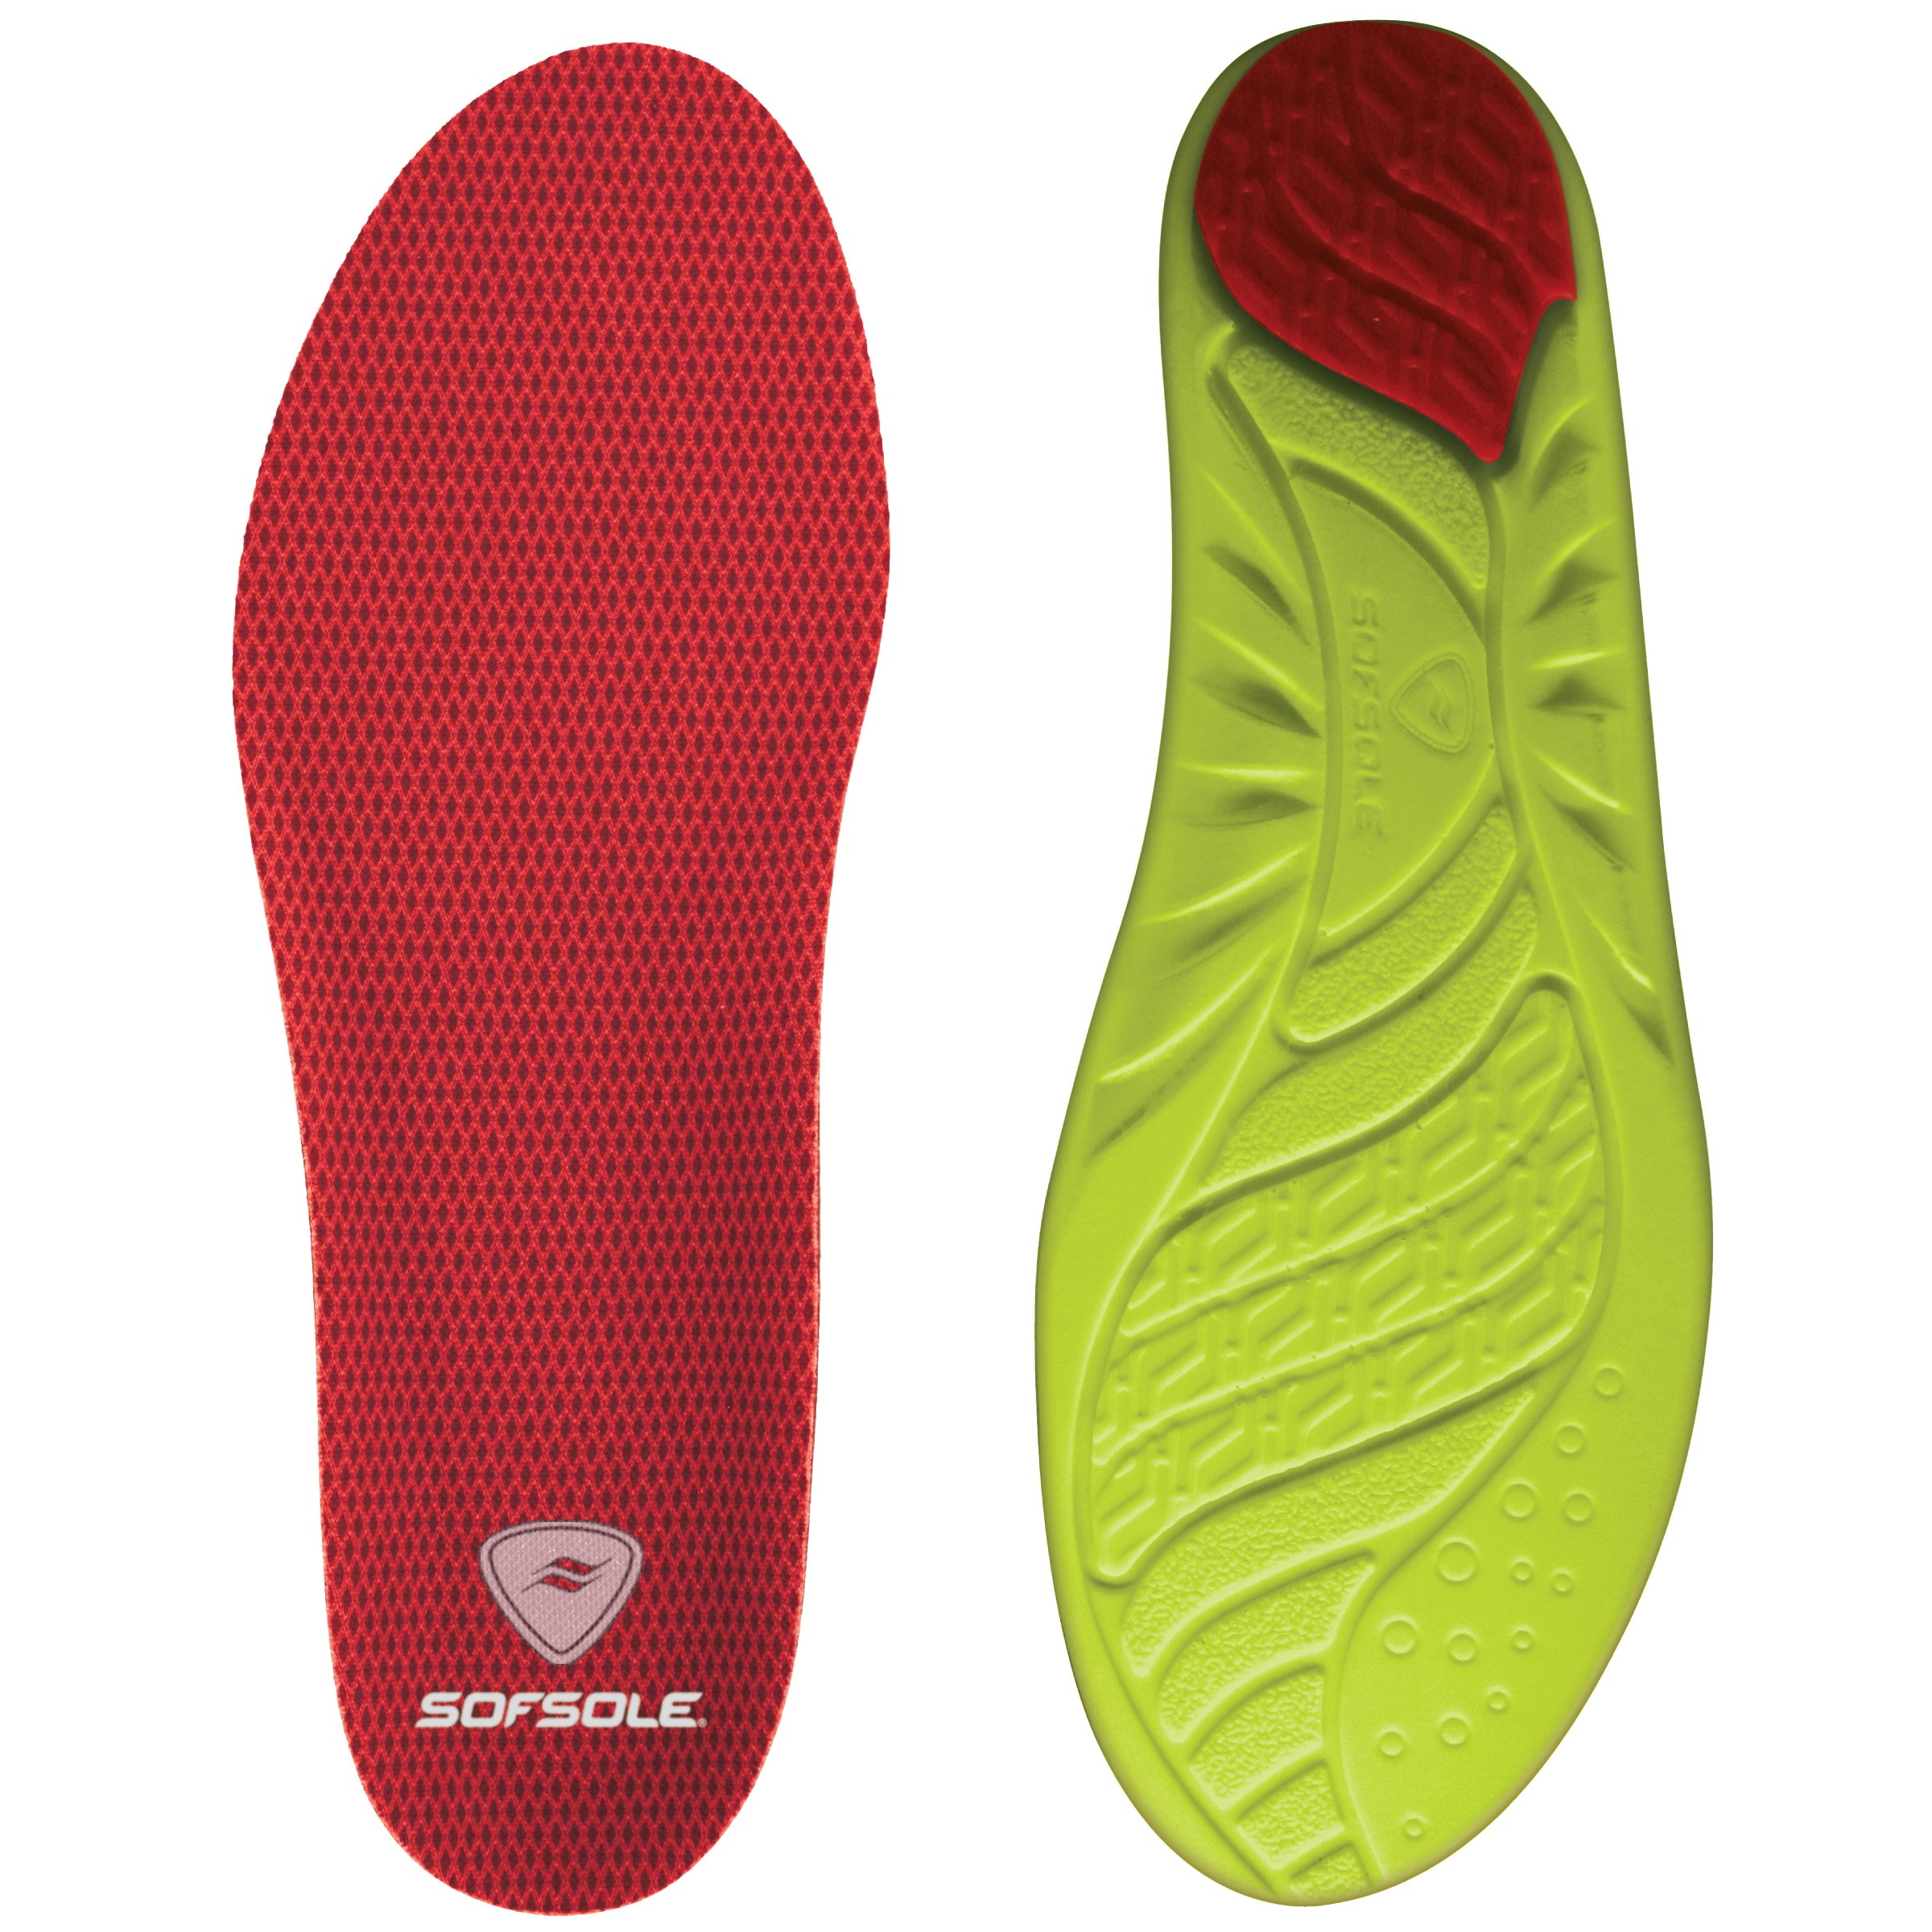 Sof Sole Women's Arch Full Length Comfort High Arch Shoe Insole, Women's Size 8-11 Red